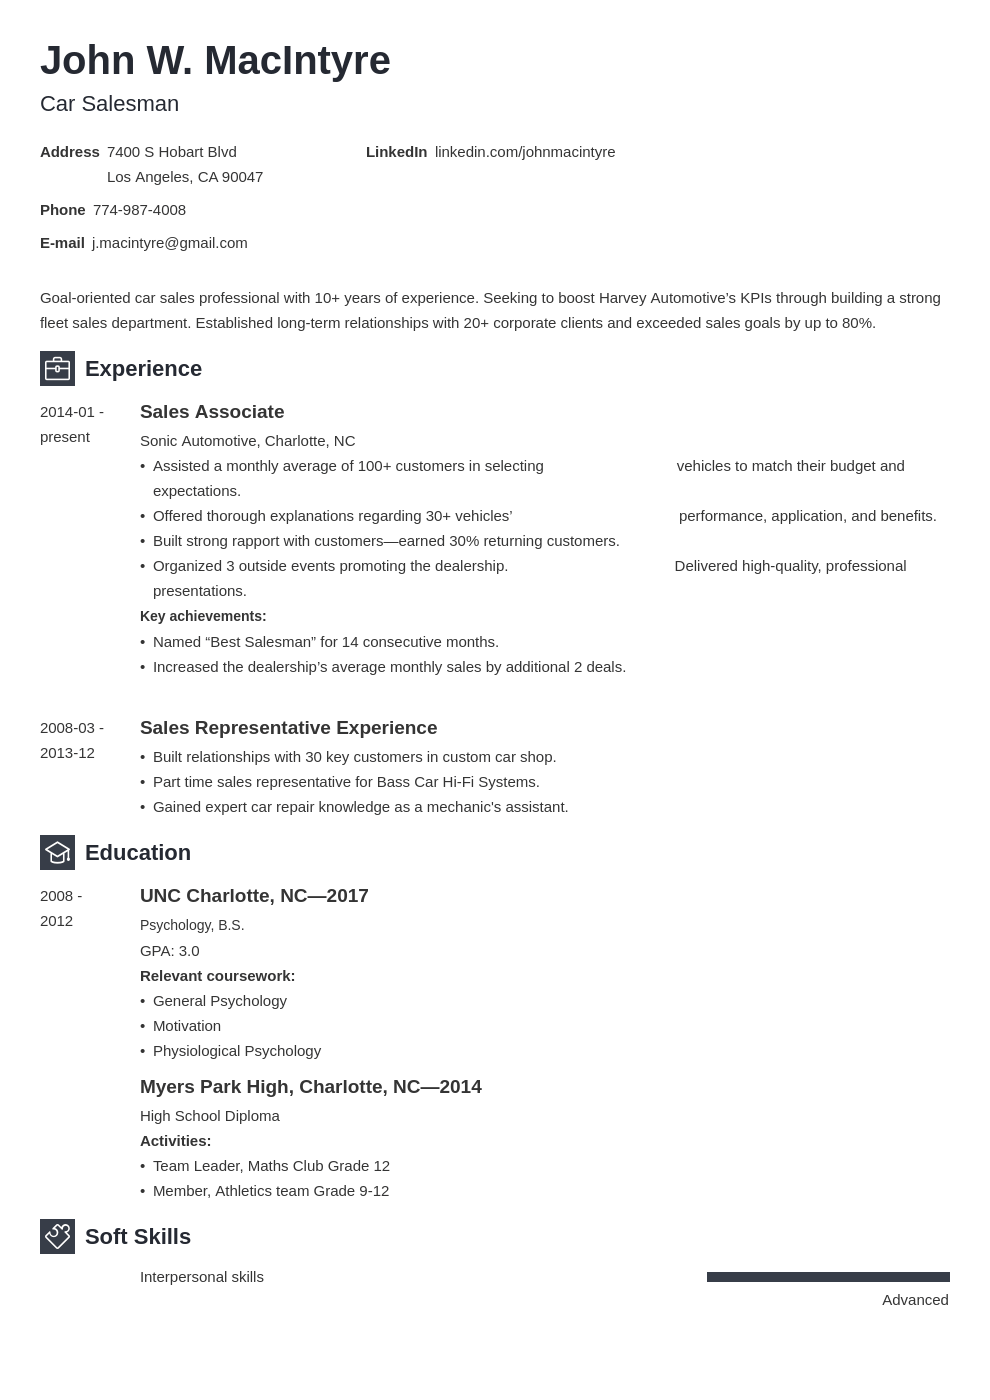 Car Salesman Resume Example Template Newcast Resume Examples Job Resume Examples Resume Layout